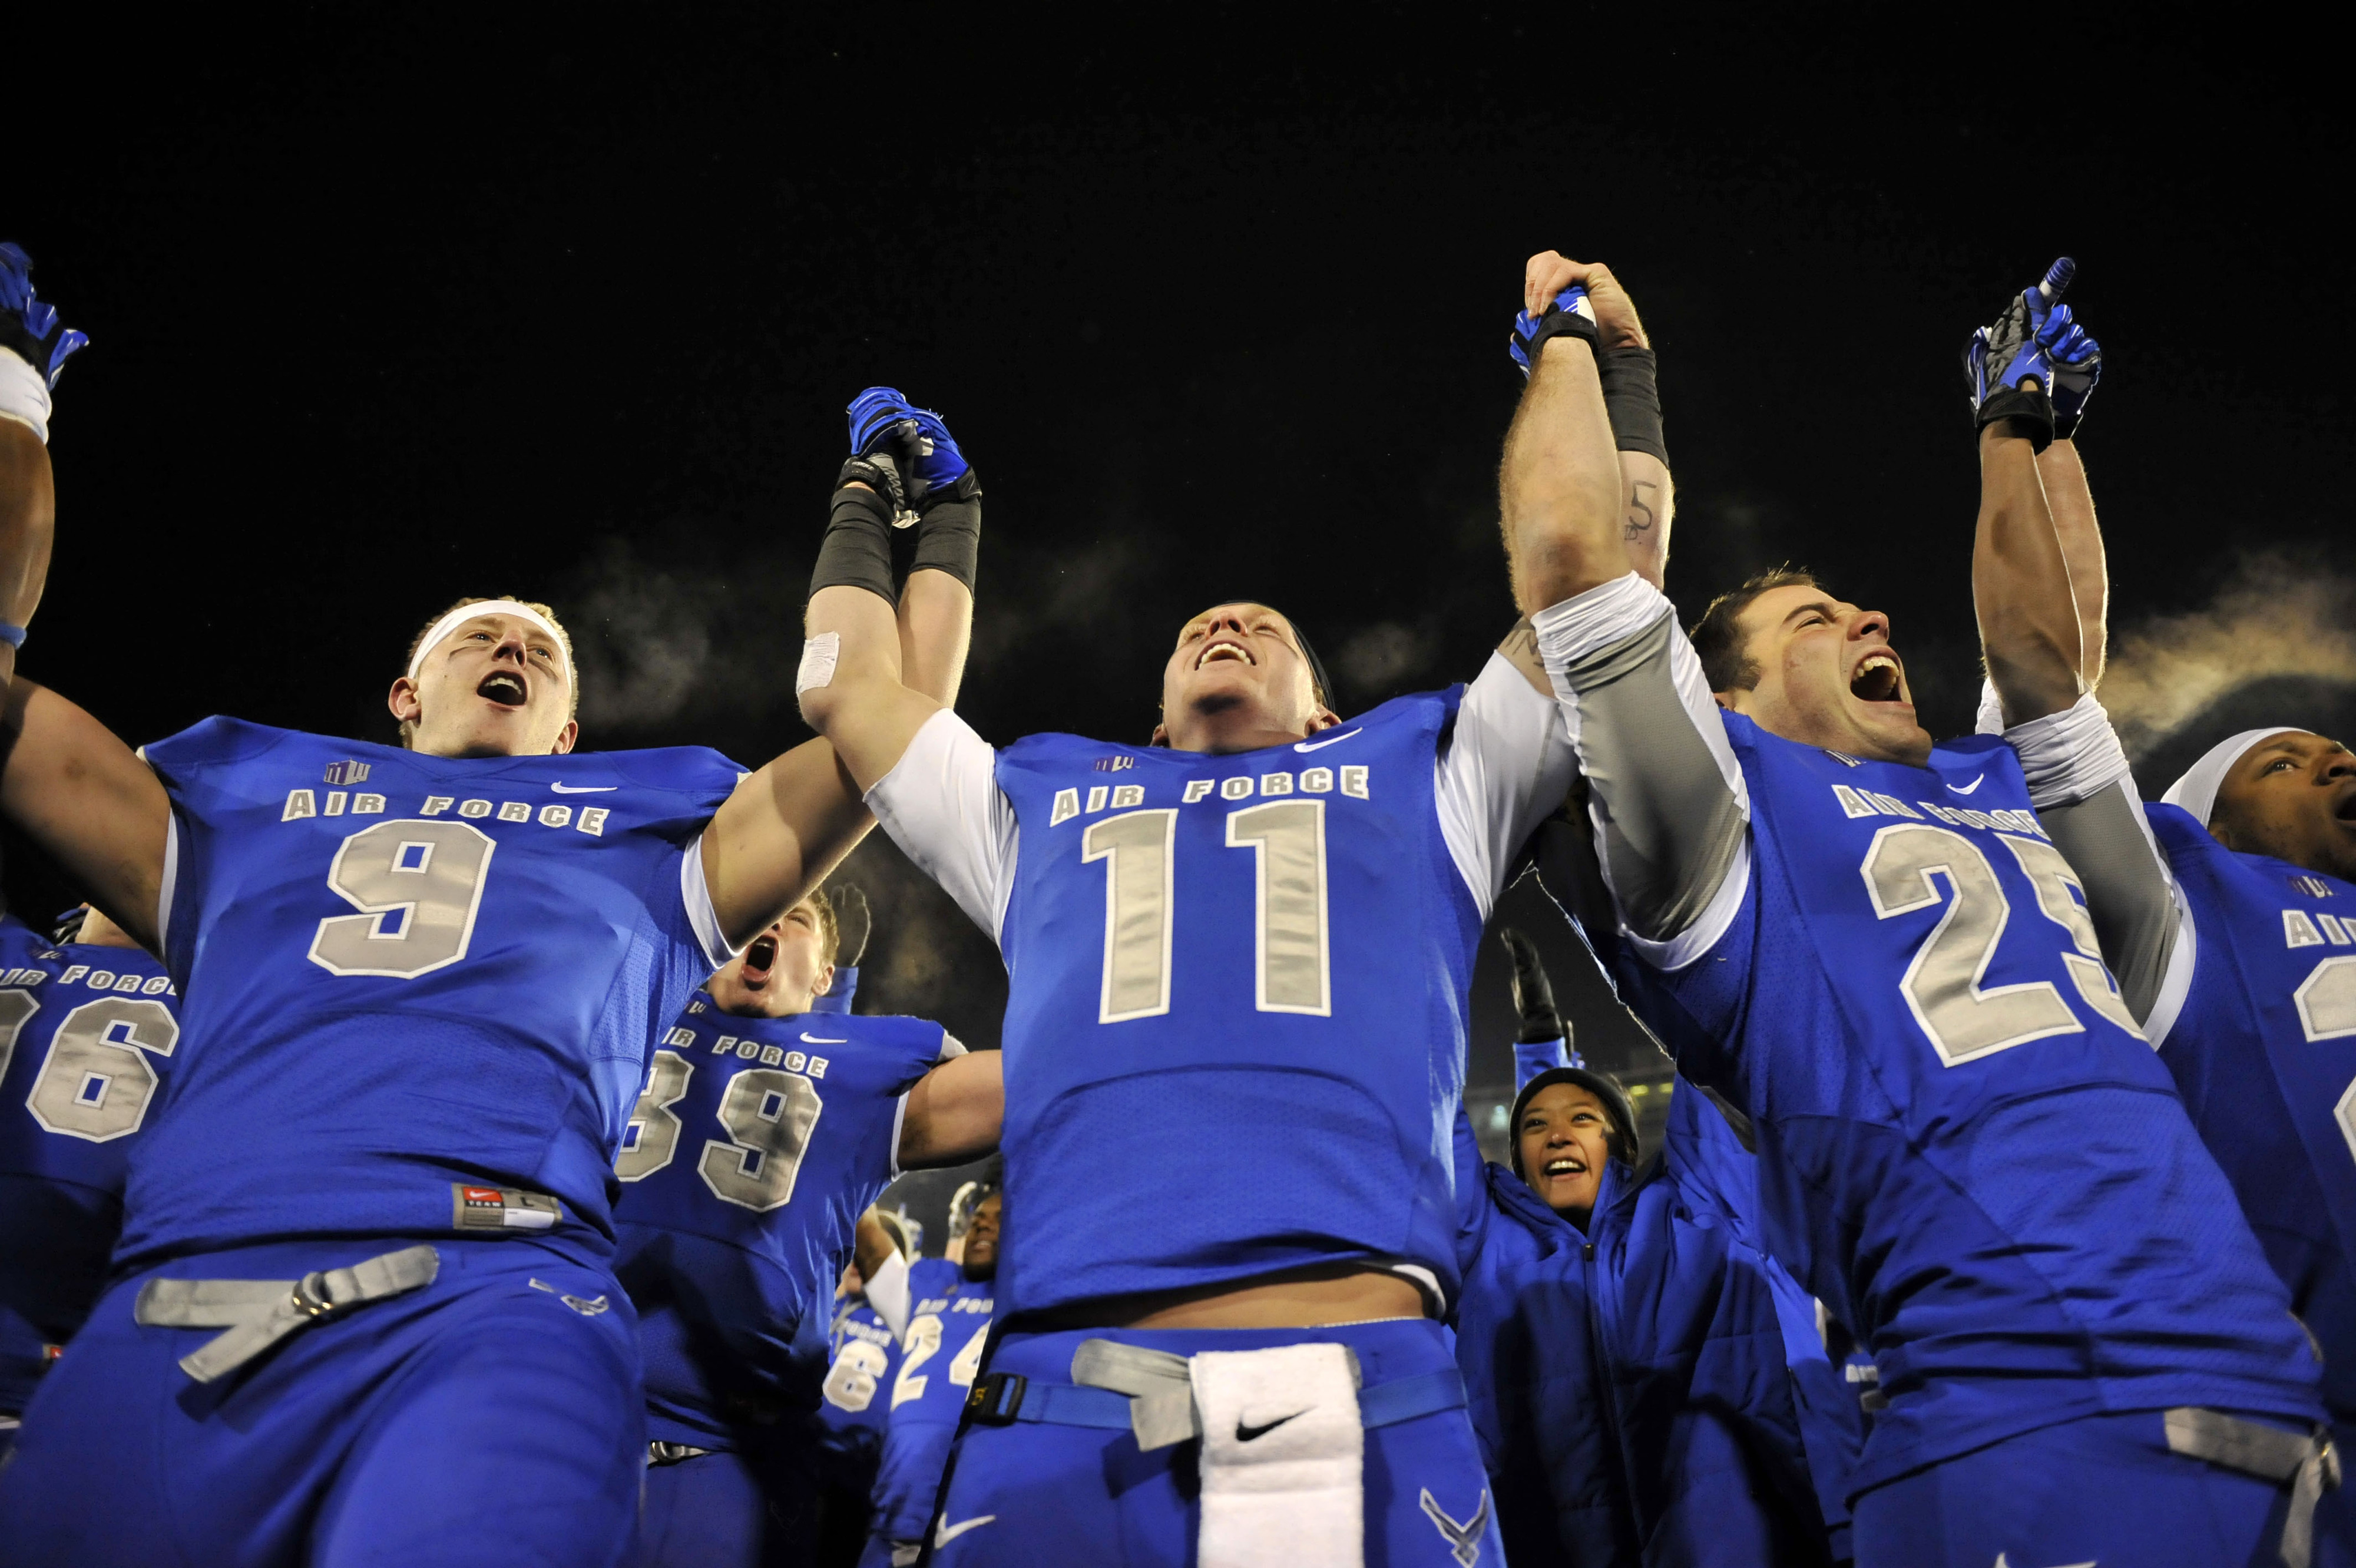 The Air Force Falcons await the naming of their Armed Forces Bowl opponent